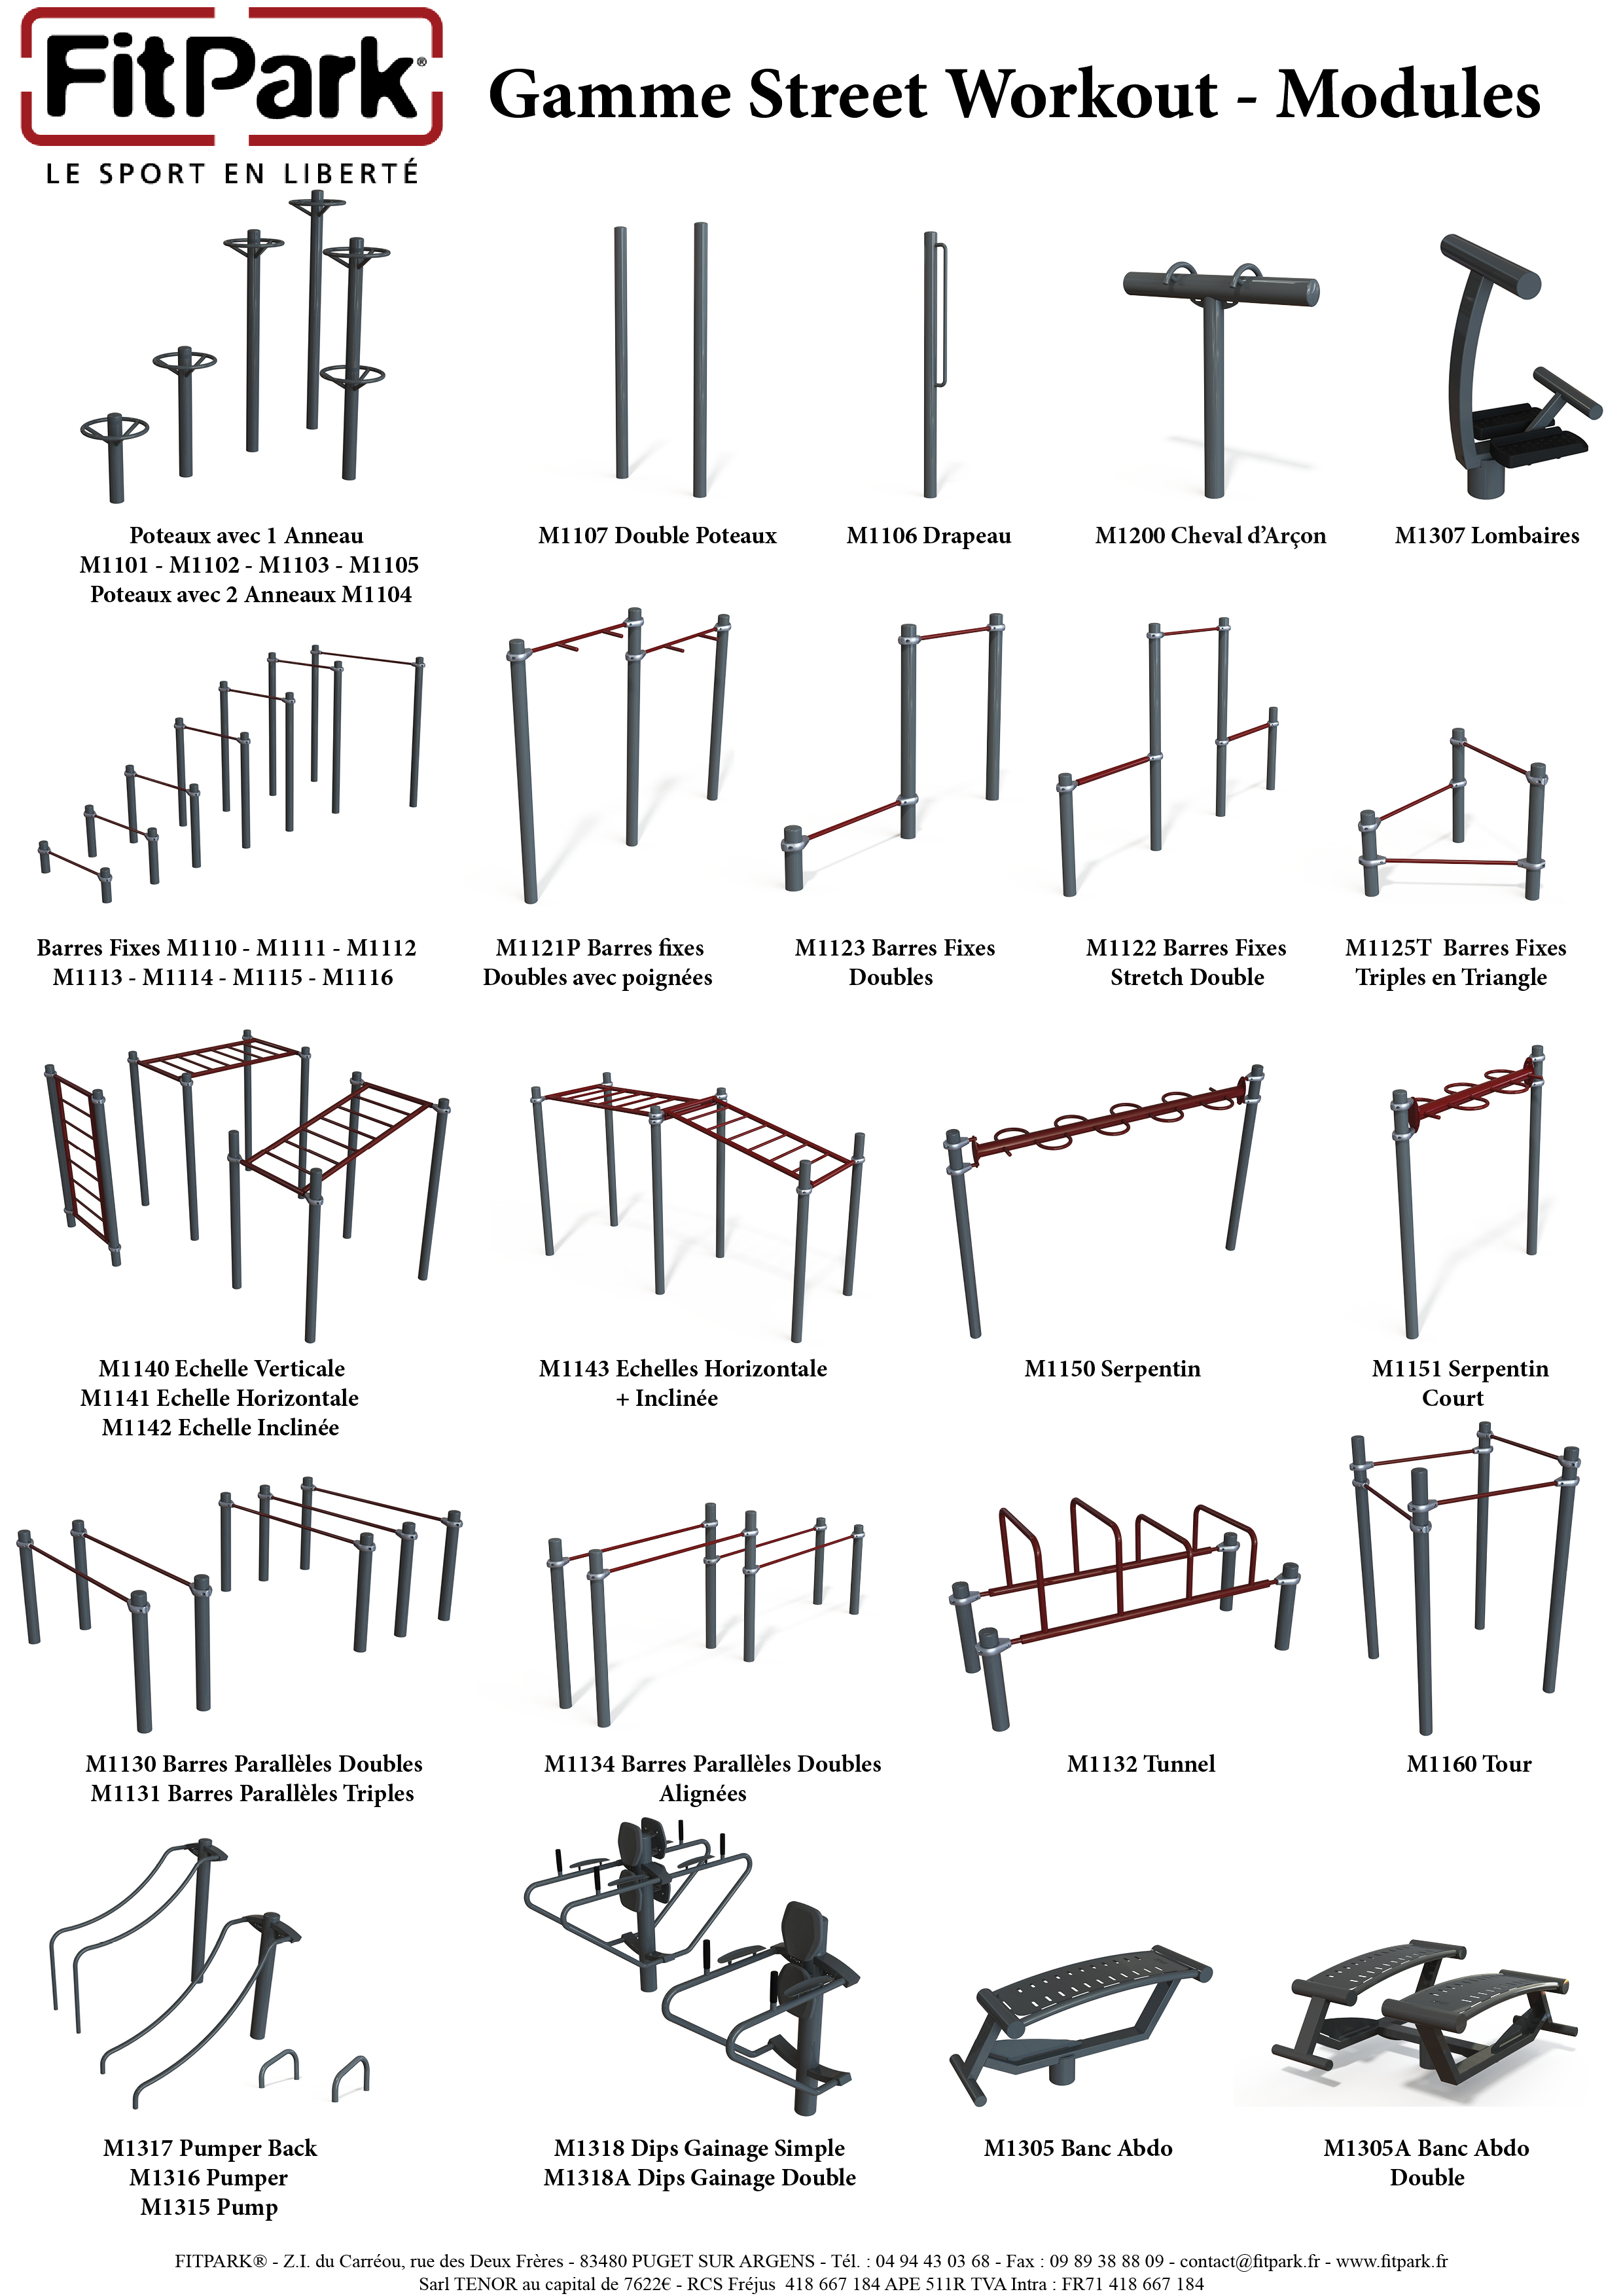 Fitpark gamme Street Workout - les Modules